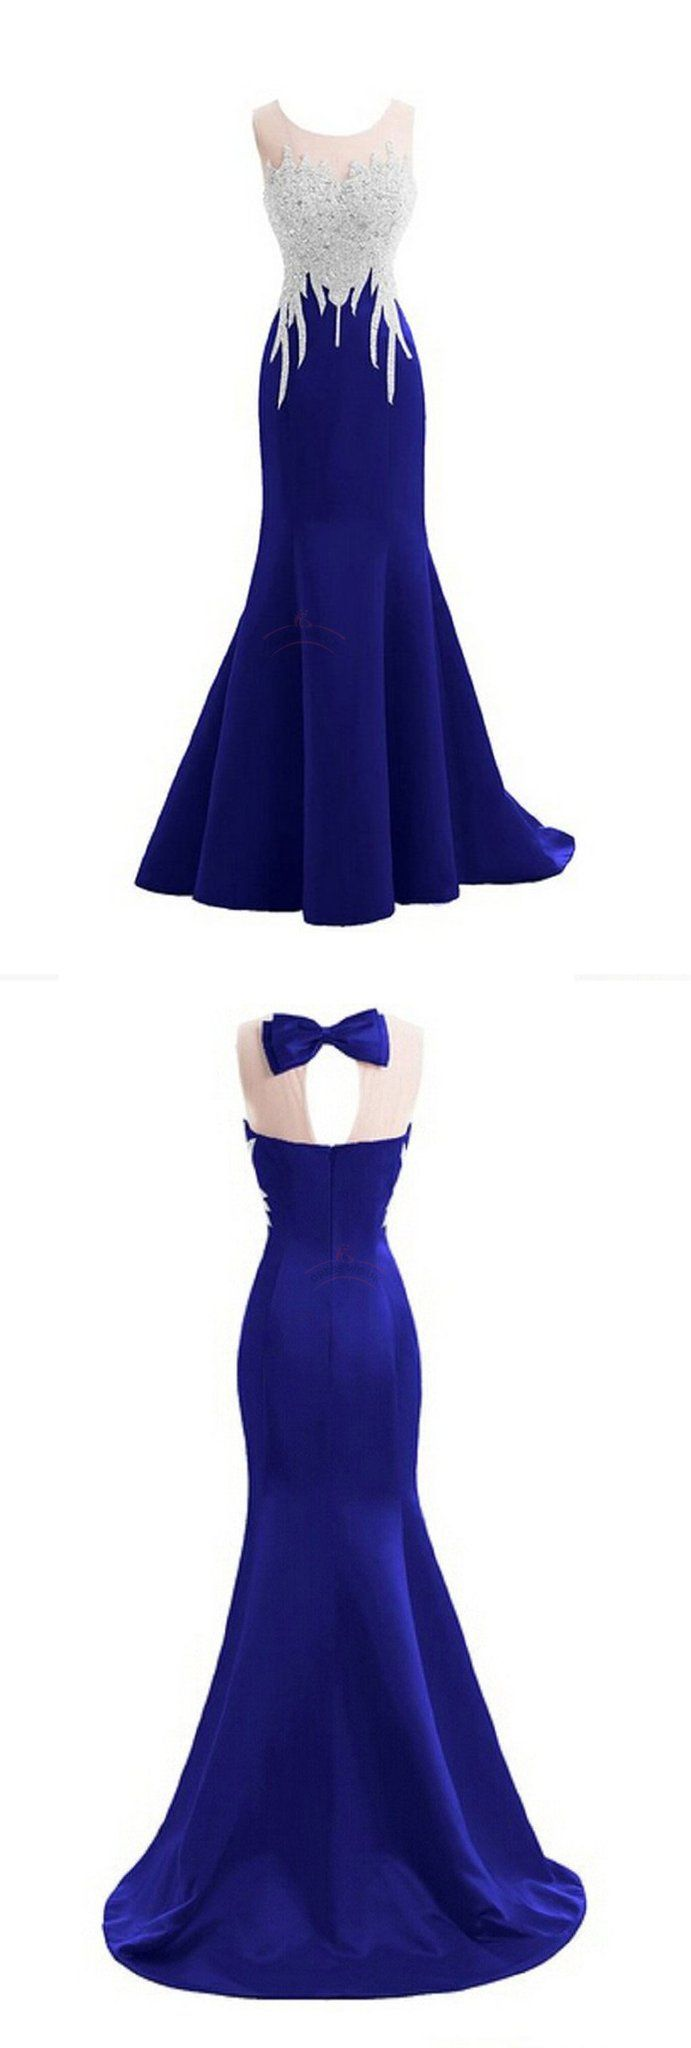 Sexy prom dresses scoop royal blue short train long prom dress